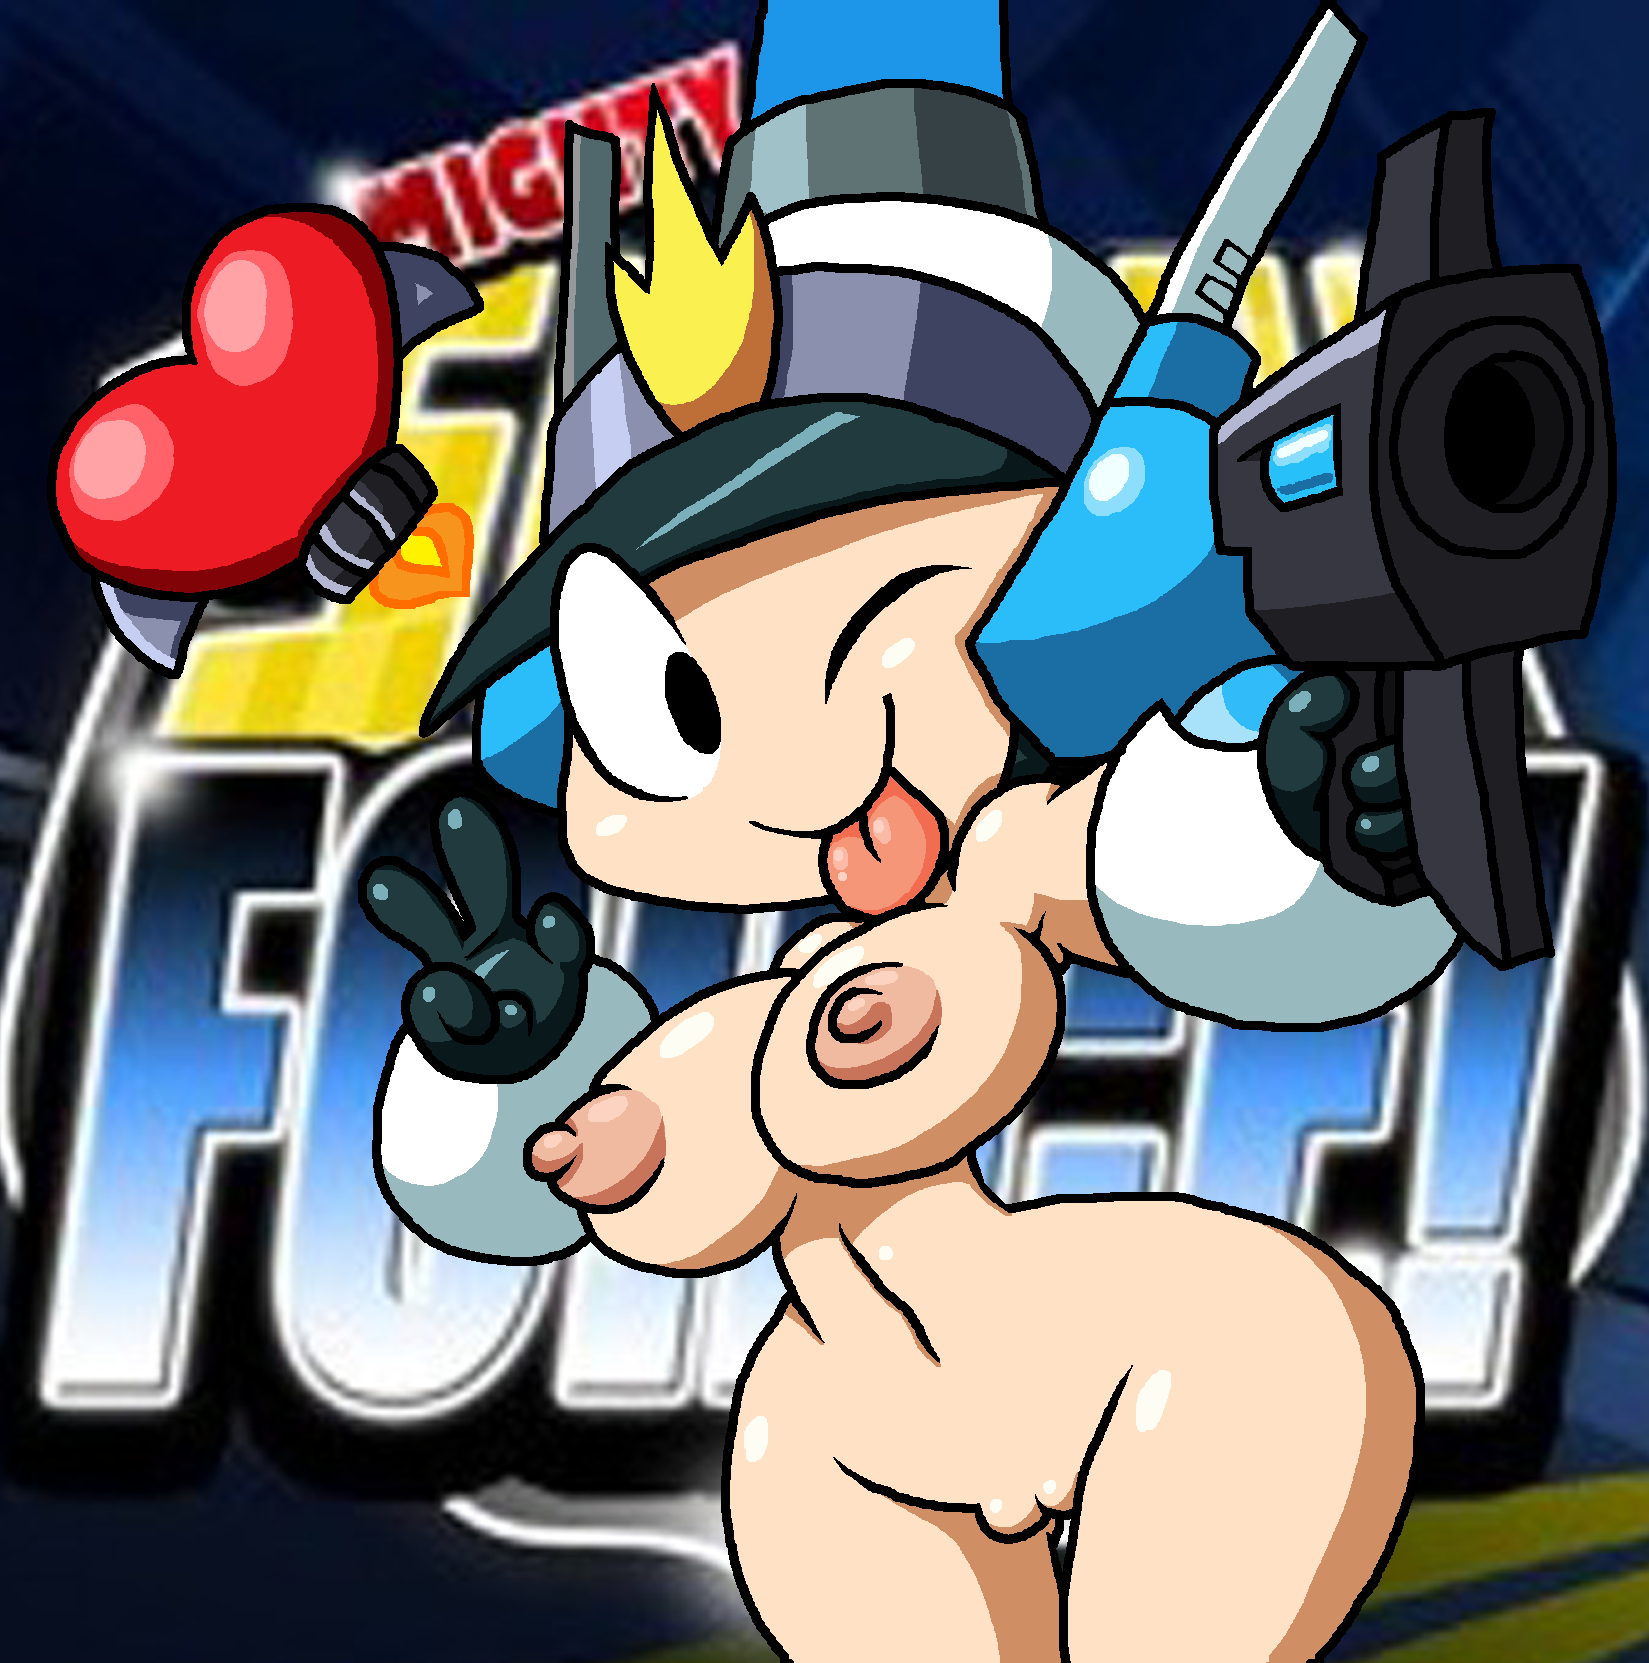 Mighty switch force porn photos and other amusements